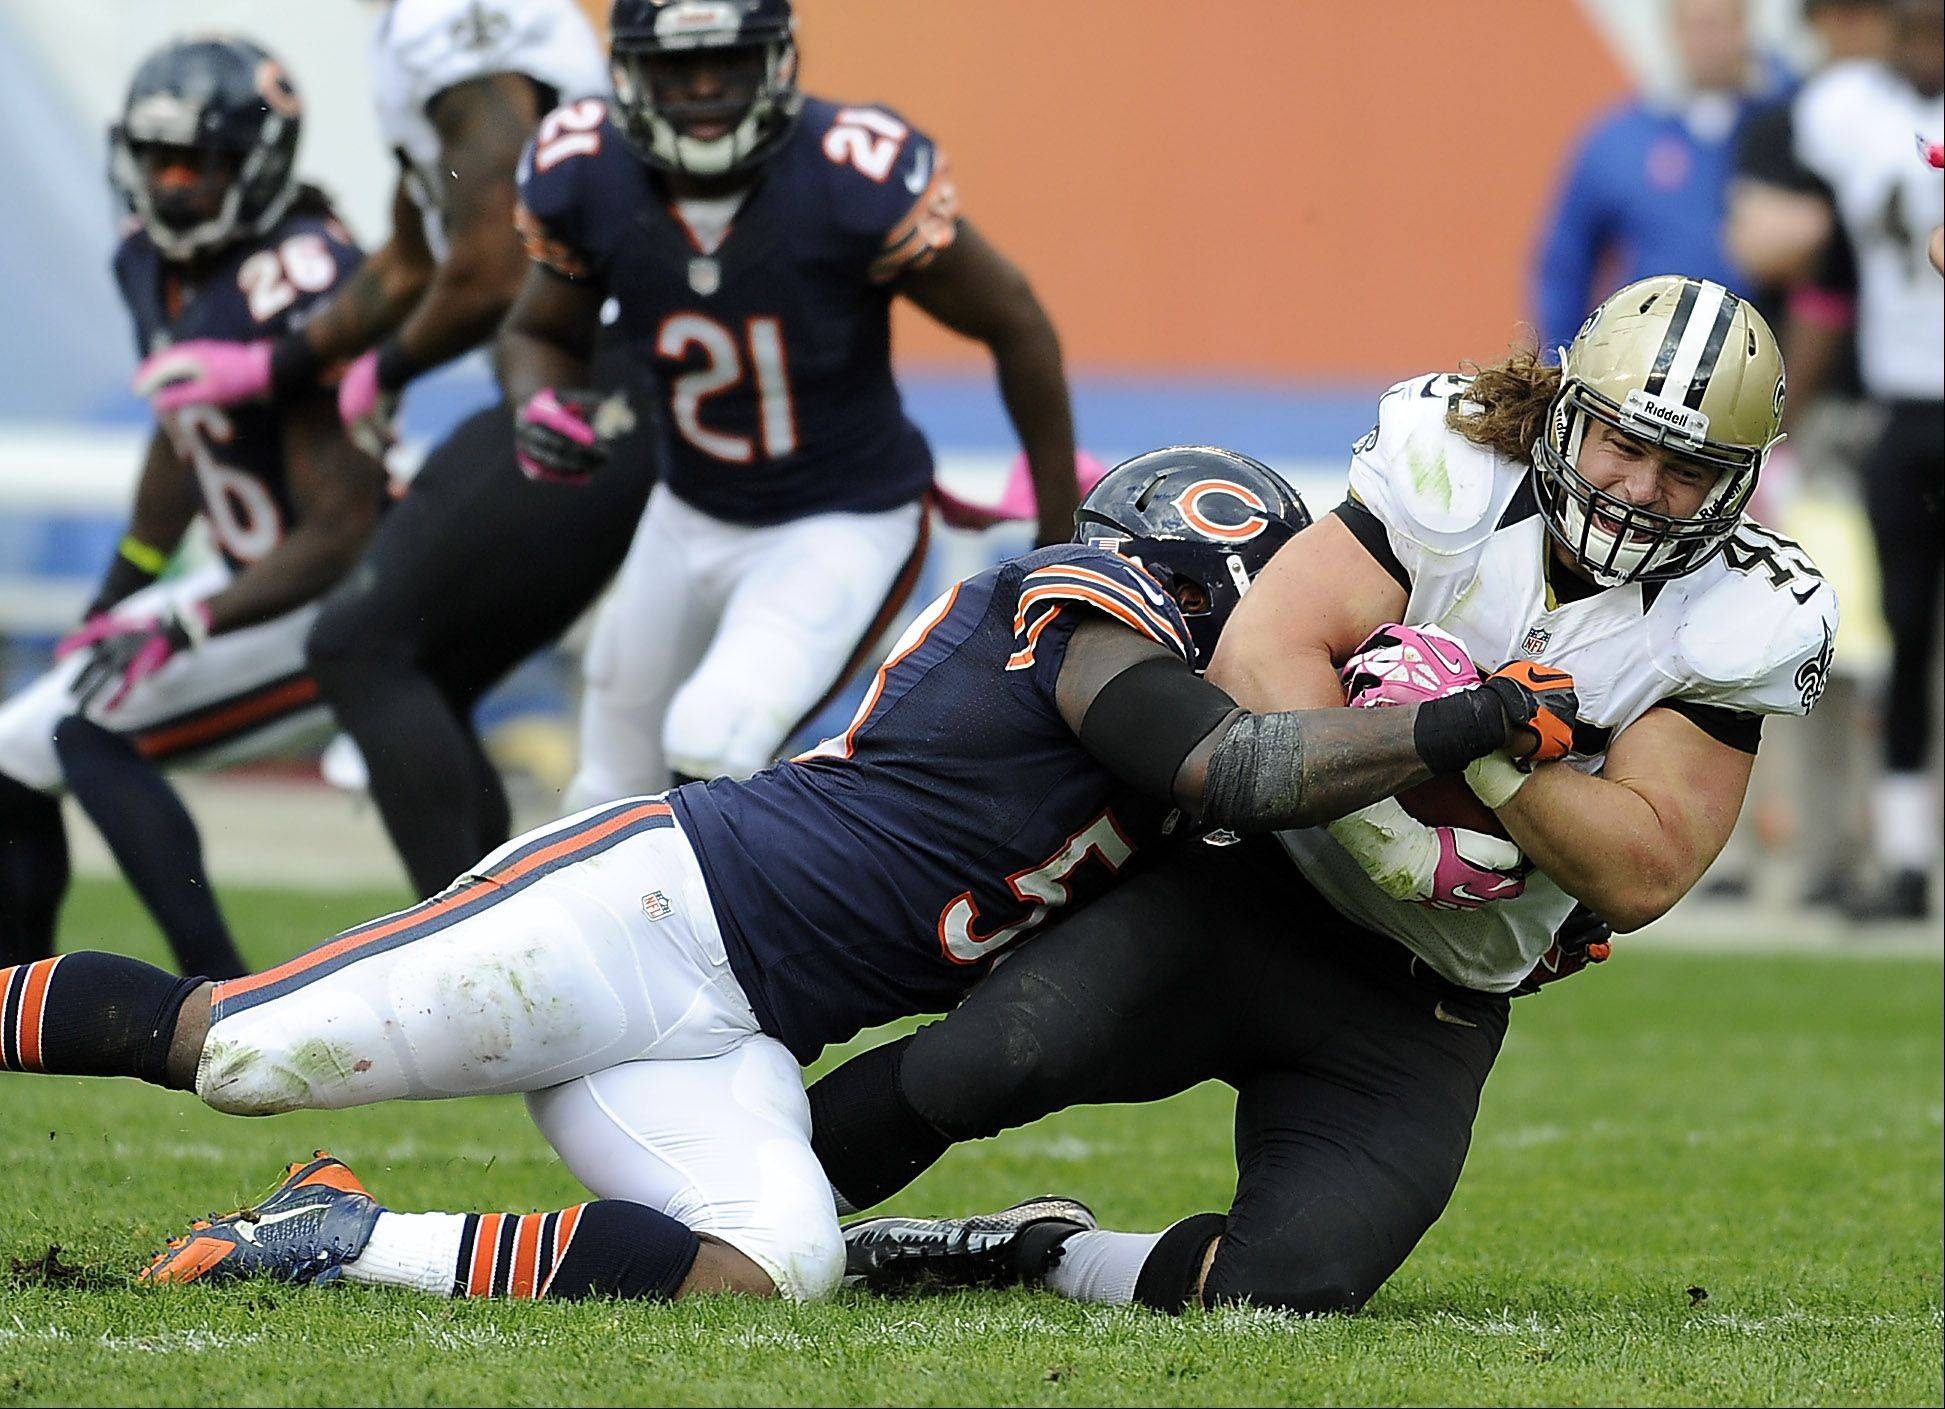 Bears D.J. Williams puts the hit on Jed Collins on this Saints drive in the 4th quarter in the Bears loss at Soldier Field on Sunday.